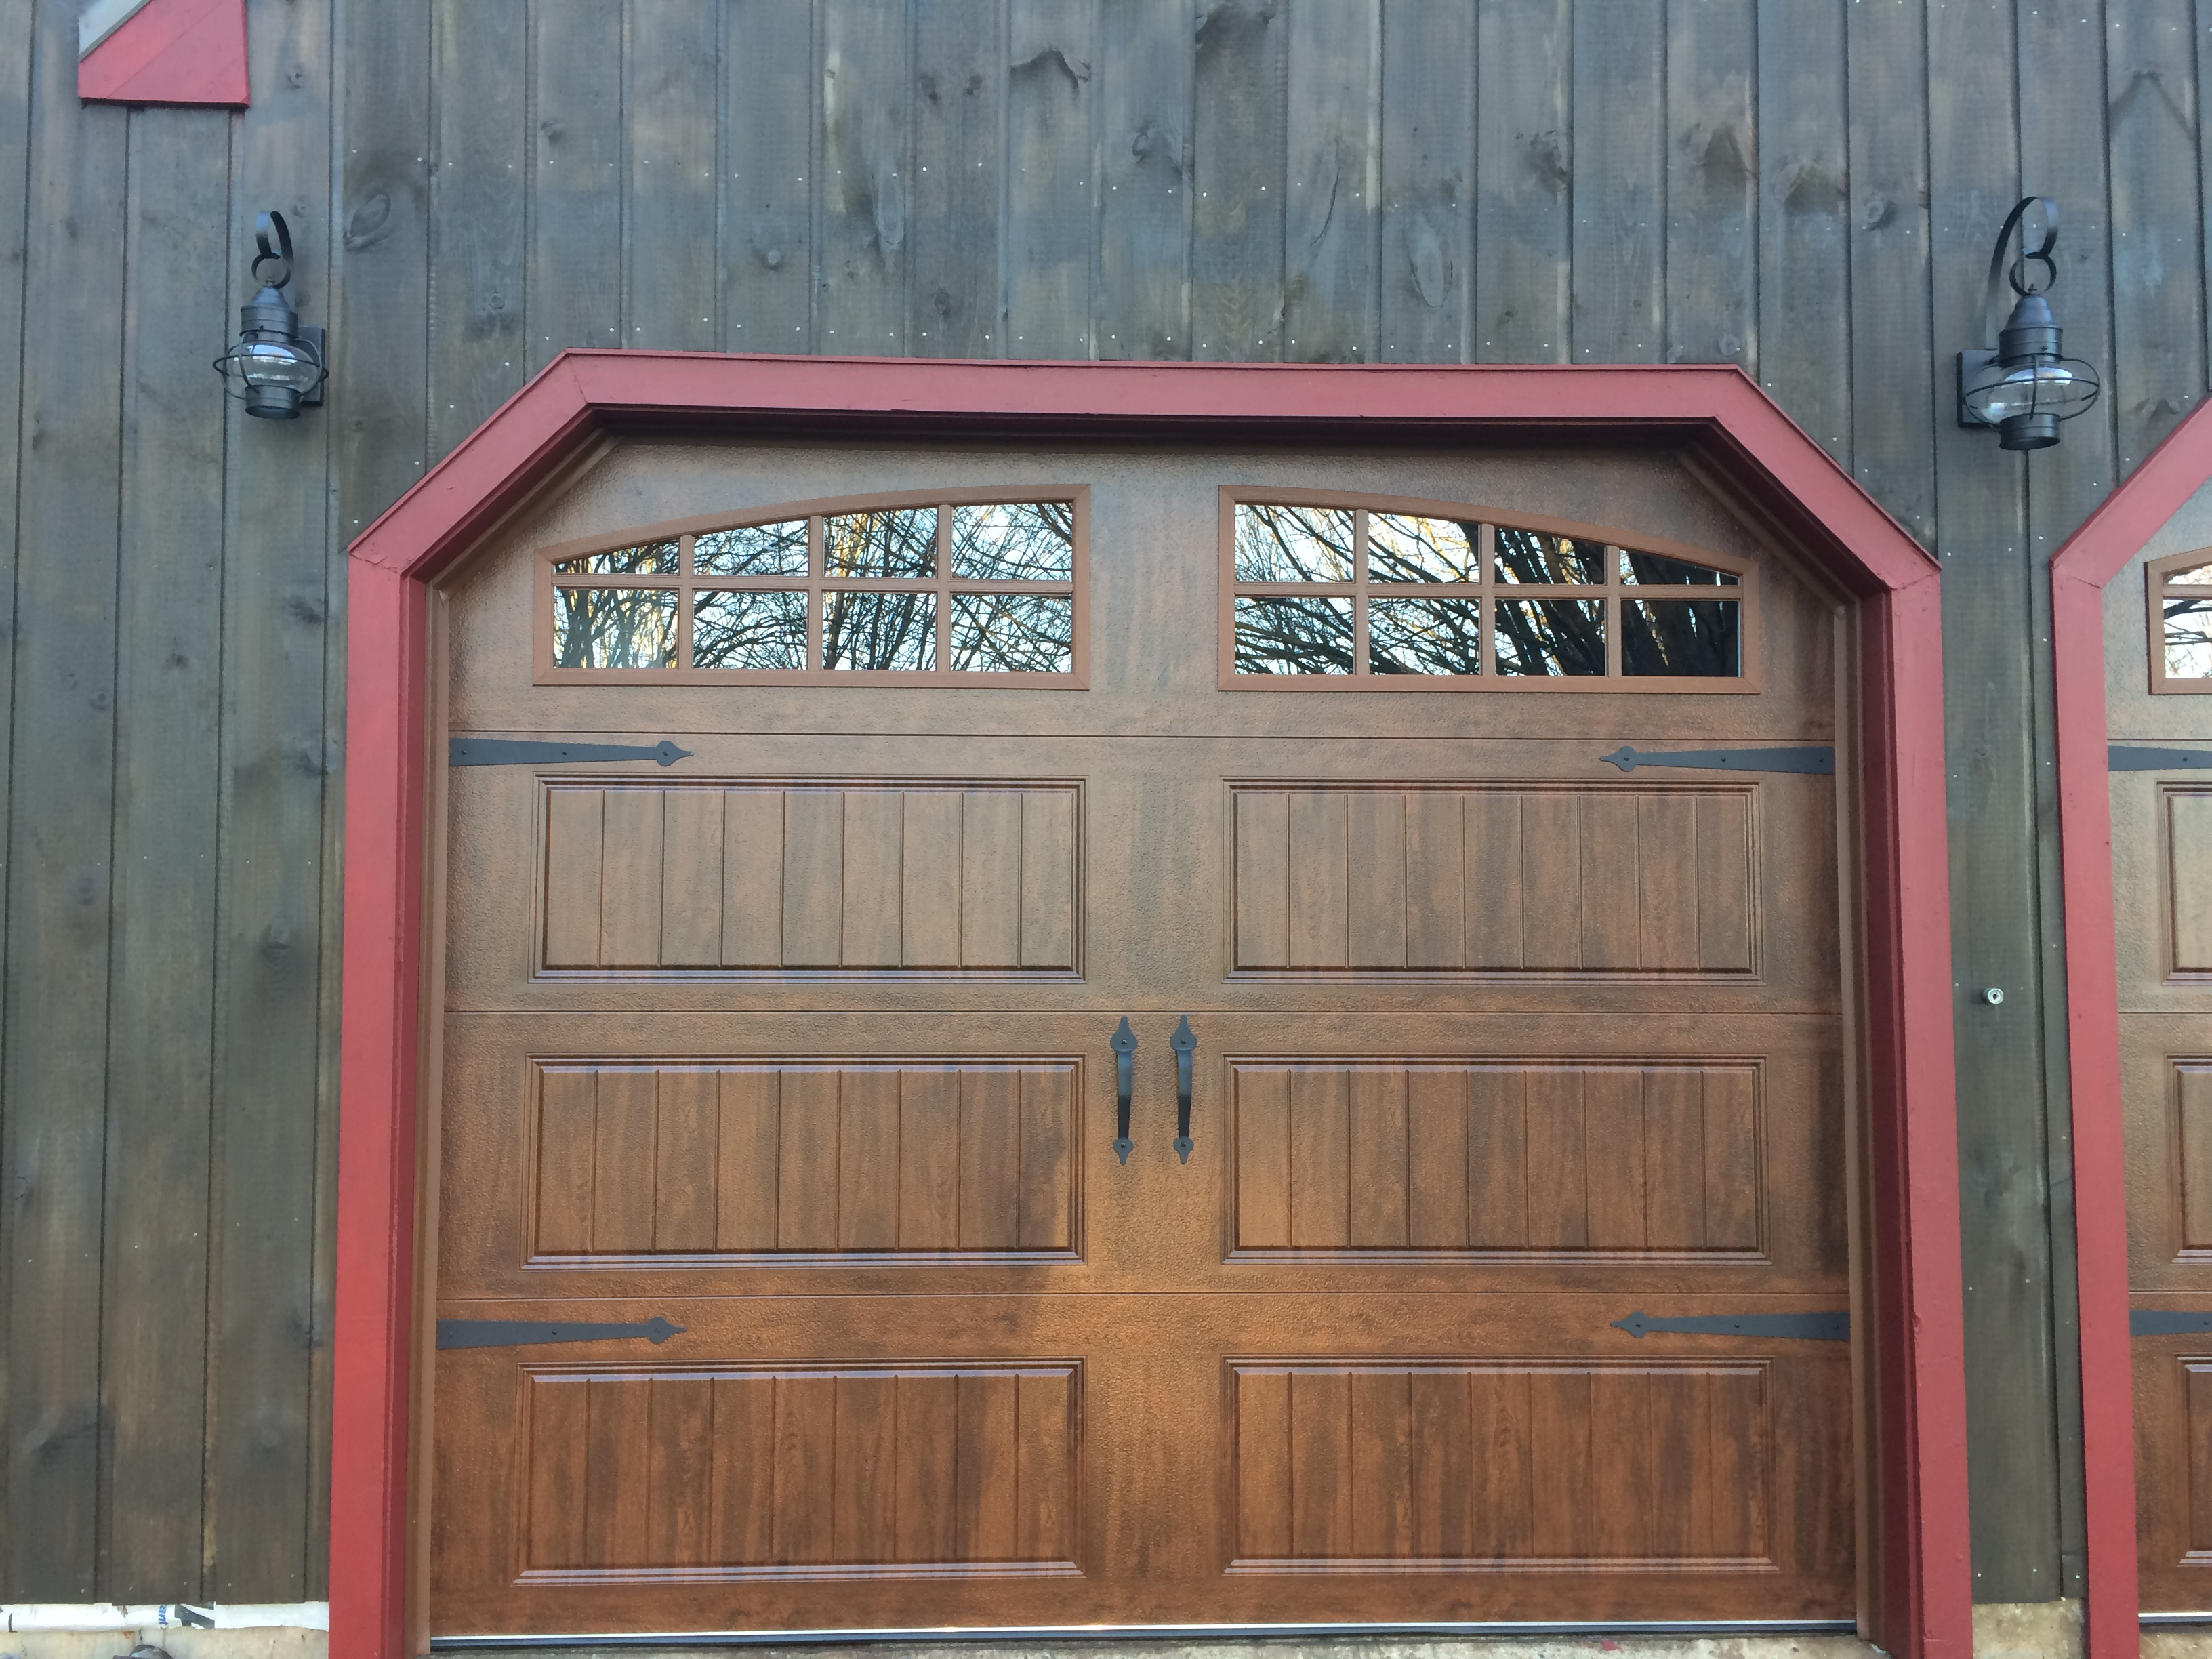 Classica northampton garage door white 9 x 8 no windows - 8x7 Classica Northampton Panel With Madeira Glass Installed In Madison We Also Installed Liftmaster 8550w With Battery Backup Outside Keypad And